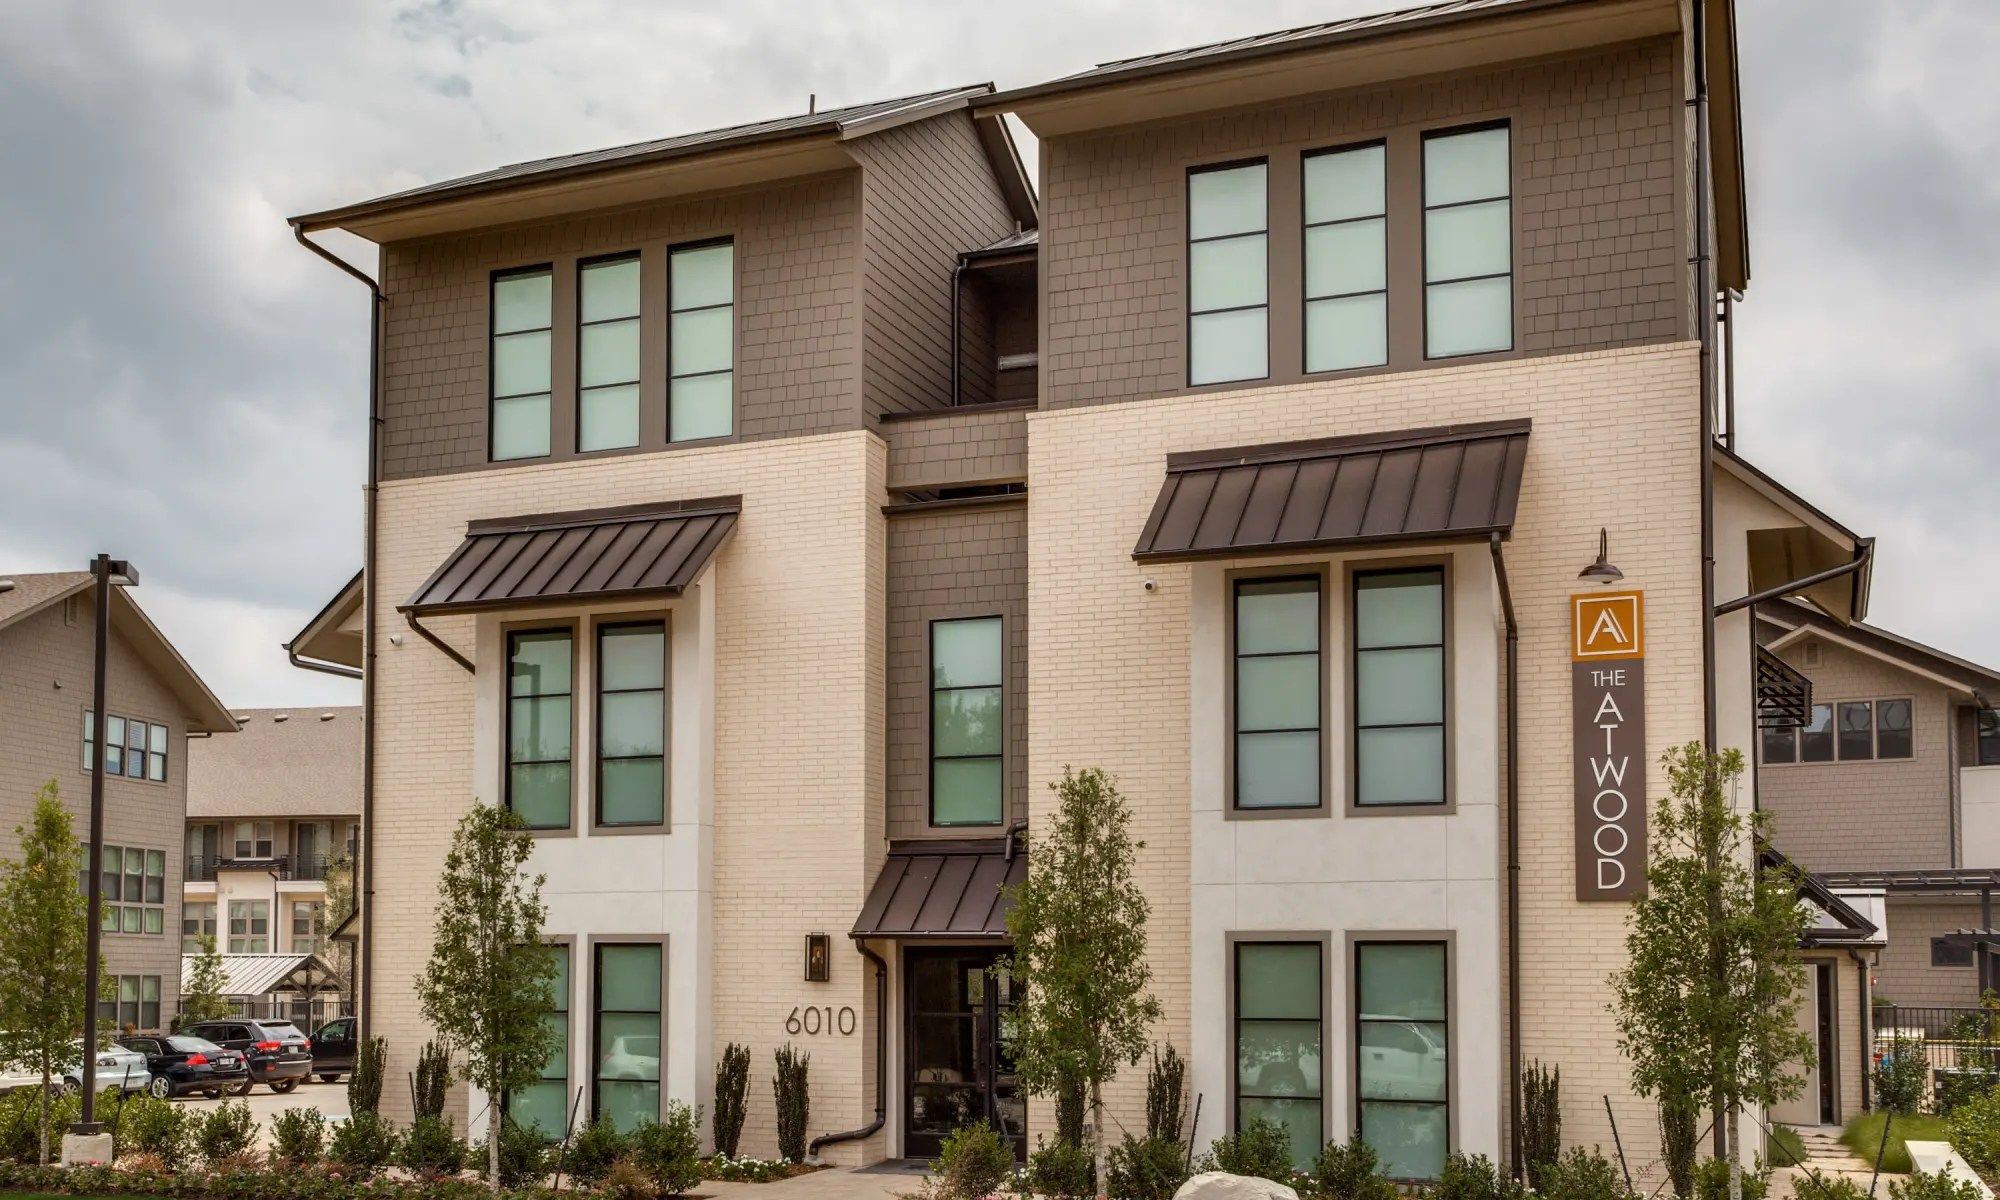 Garage Apartment For Rent In Dallas Dallas Apartments Townhomes For Rent Atwood At Ellison